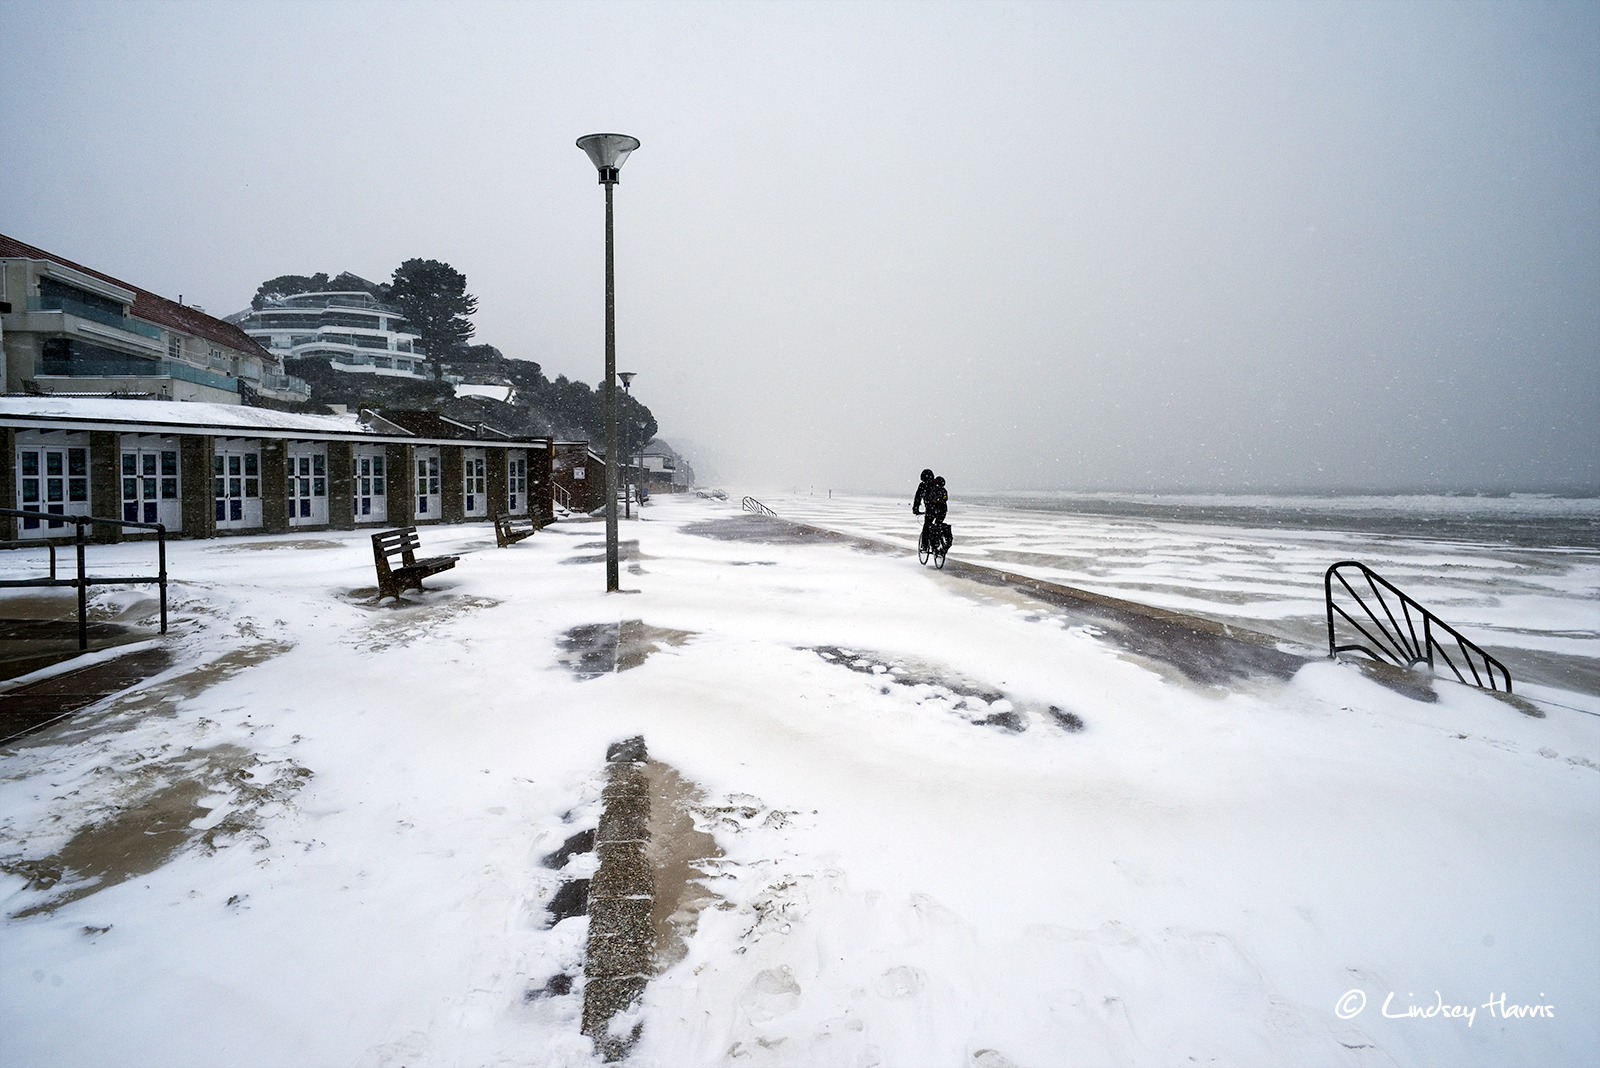 Snow at Sandbanks, March 2018